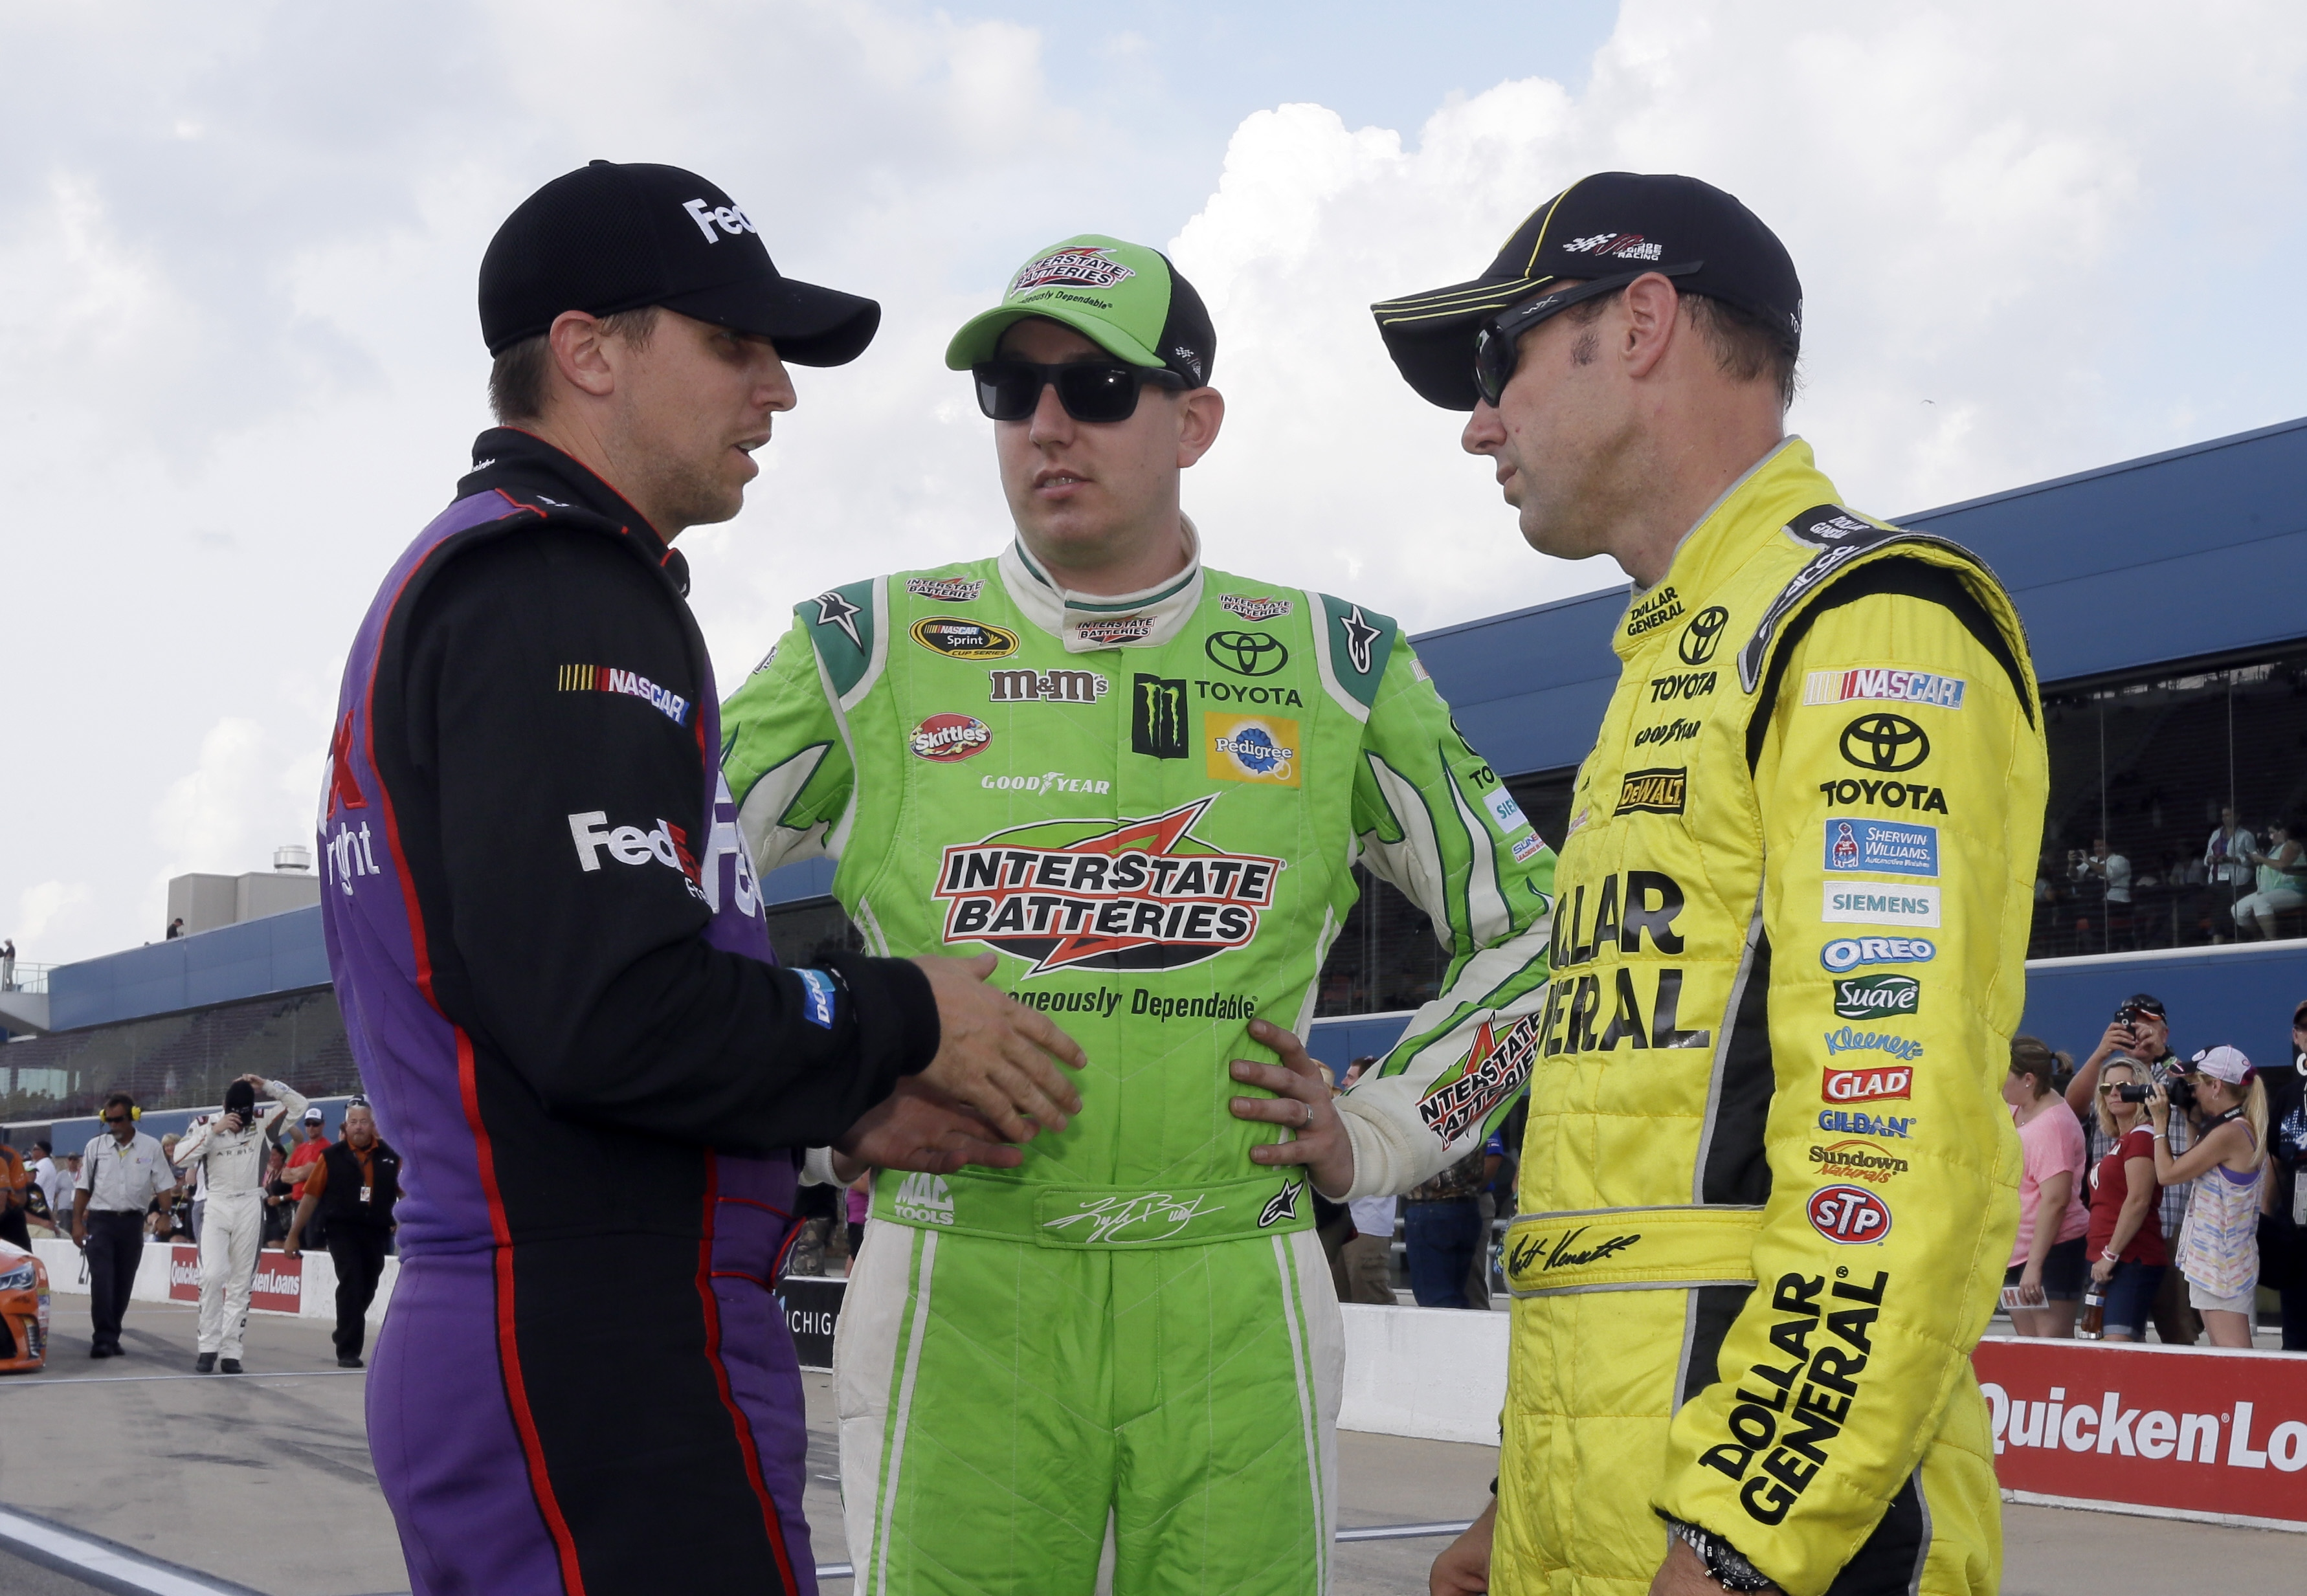 Denny Hamlin, left, talks with Kyle Busch, center, and Matt Kenseth after qualifying Friday, Aug. 14, 2015, for the NASCAR Sprint Cup series auto race at Michigan International Speedway,in Brooklyn, Mich. Kenseth won the pole. (AP Photo/Carlos Osorio)